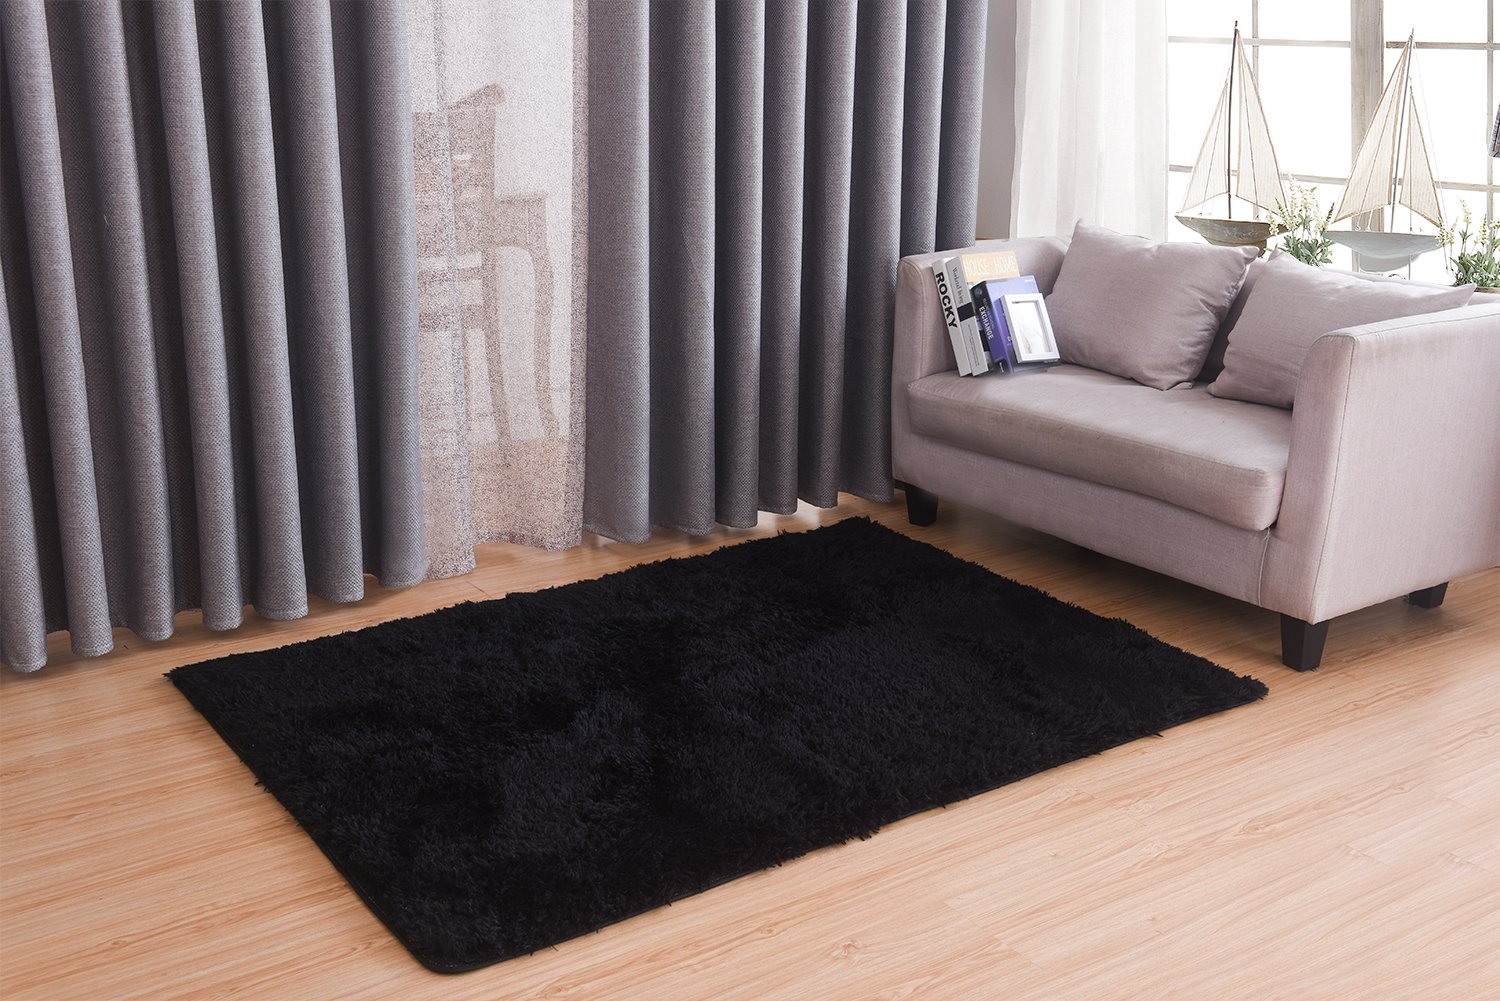 Amazon Living Room Bedroom Rugs MBIGM Ultra Soft Modern Area Thick Shaggy Play Nursery Rug With Non Slip Carpet Pad For 4